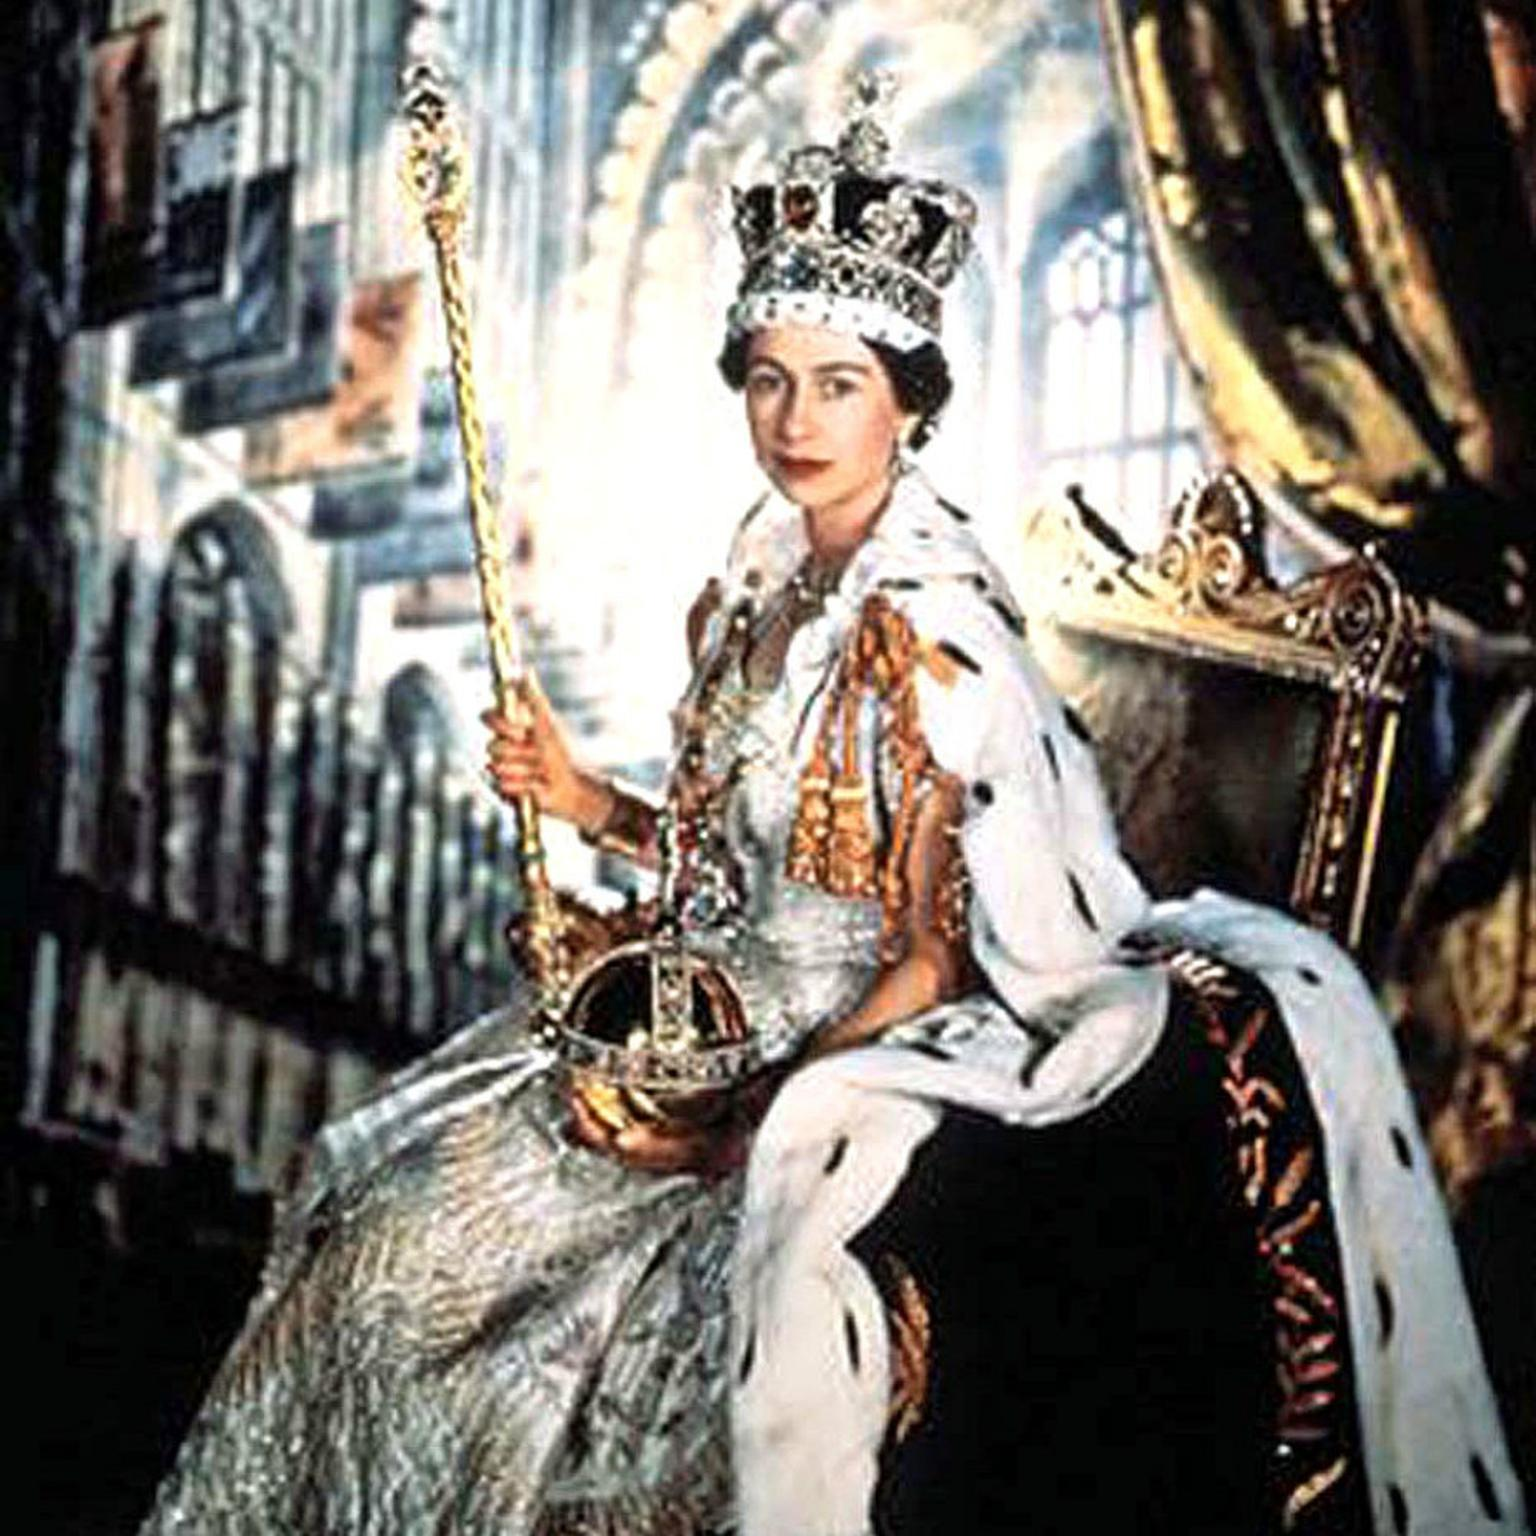 Queen Elizabeth II and The Crown Jewels